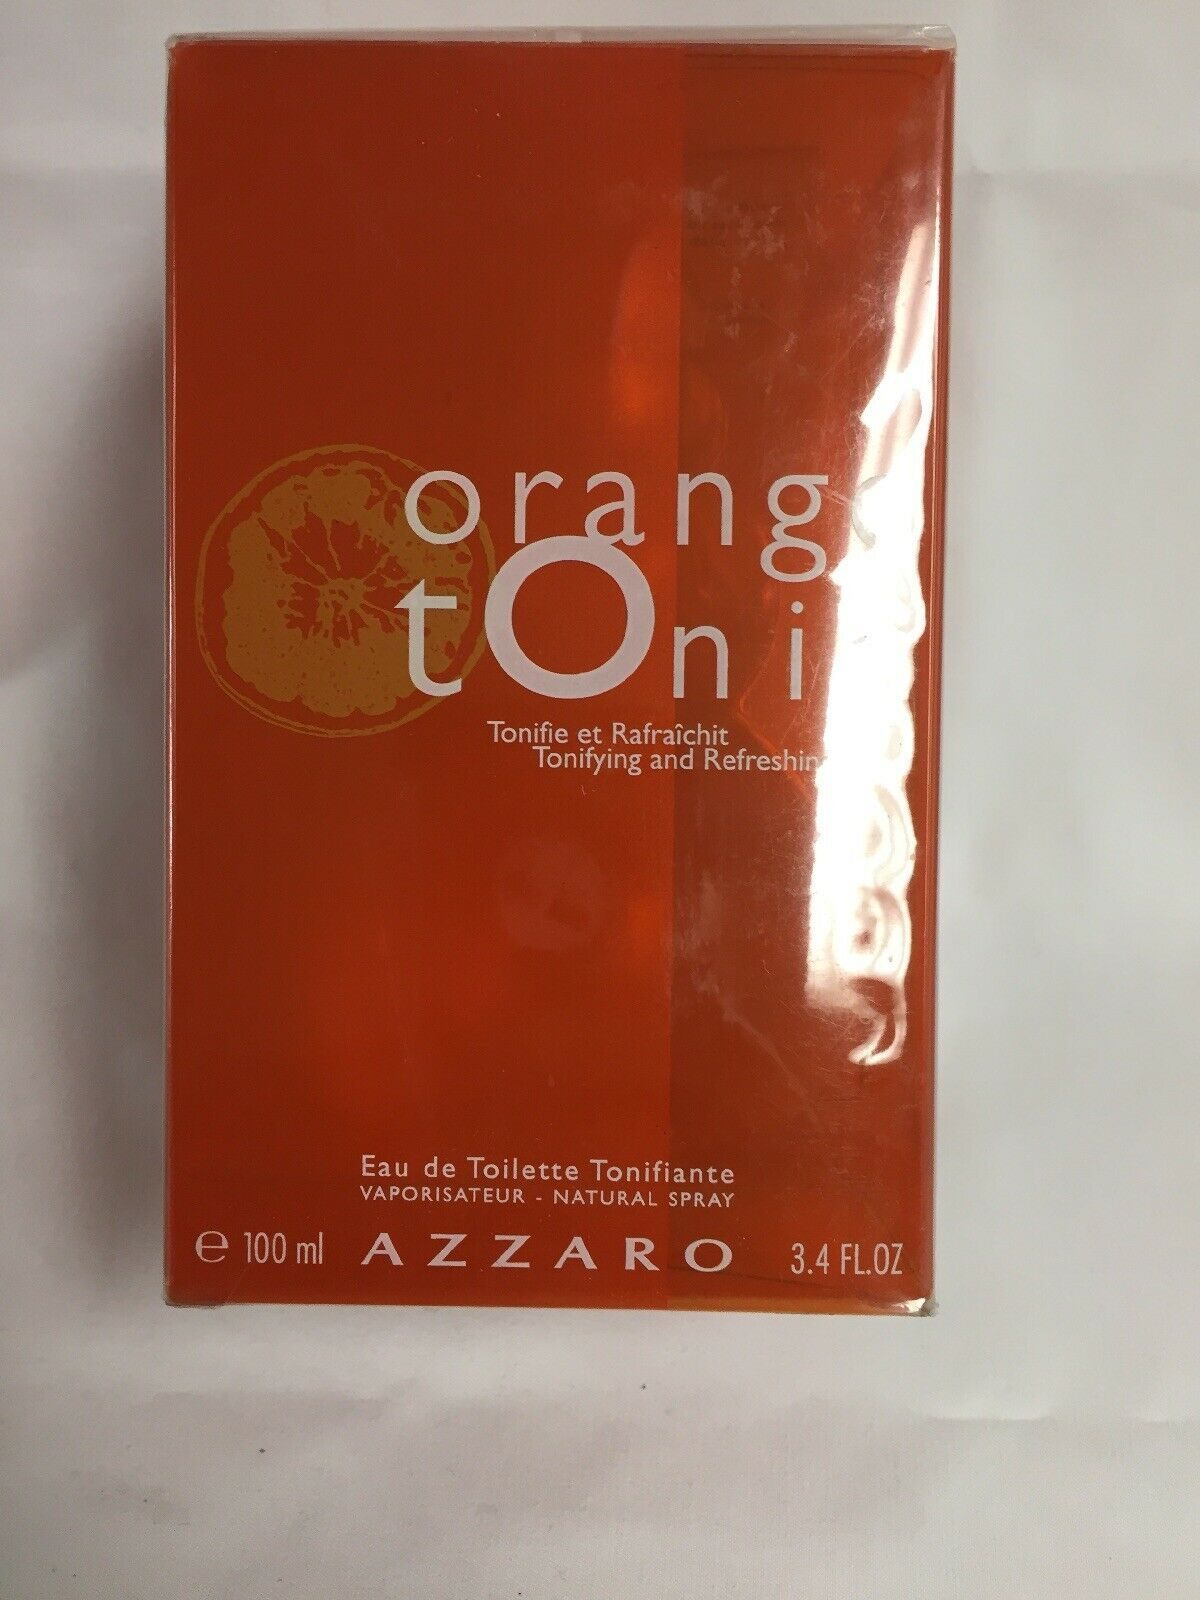 Azzaro orange tonic 3.4 oz perfume